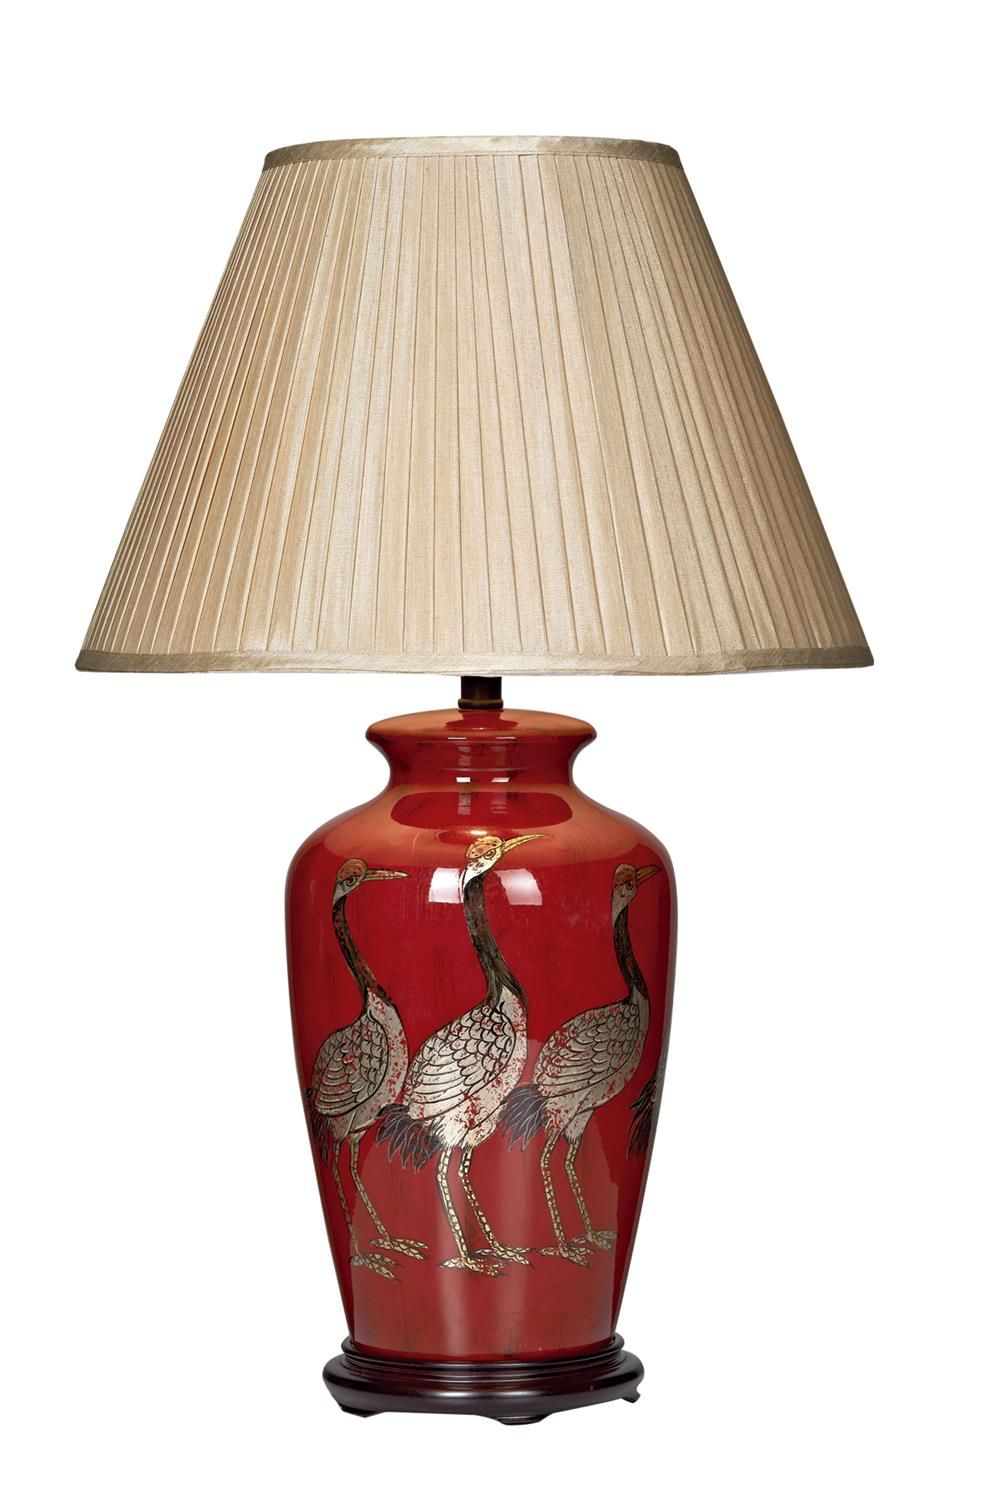 Red Bases For Living Room Decor: BER4225 Bertha Table Lamp Base Only In RED Deep Red